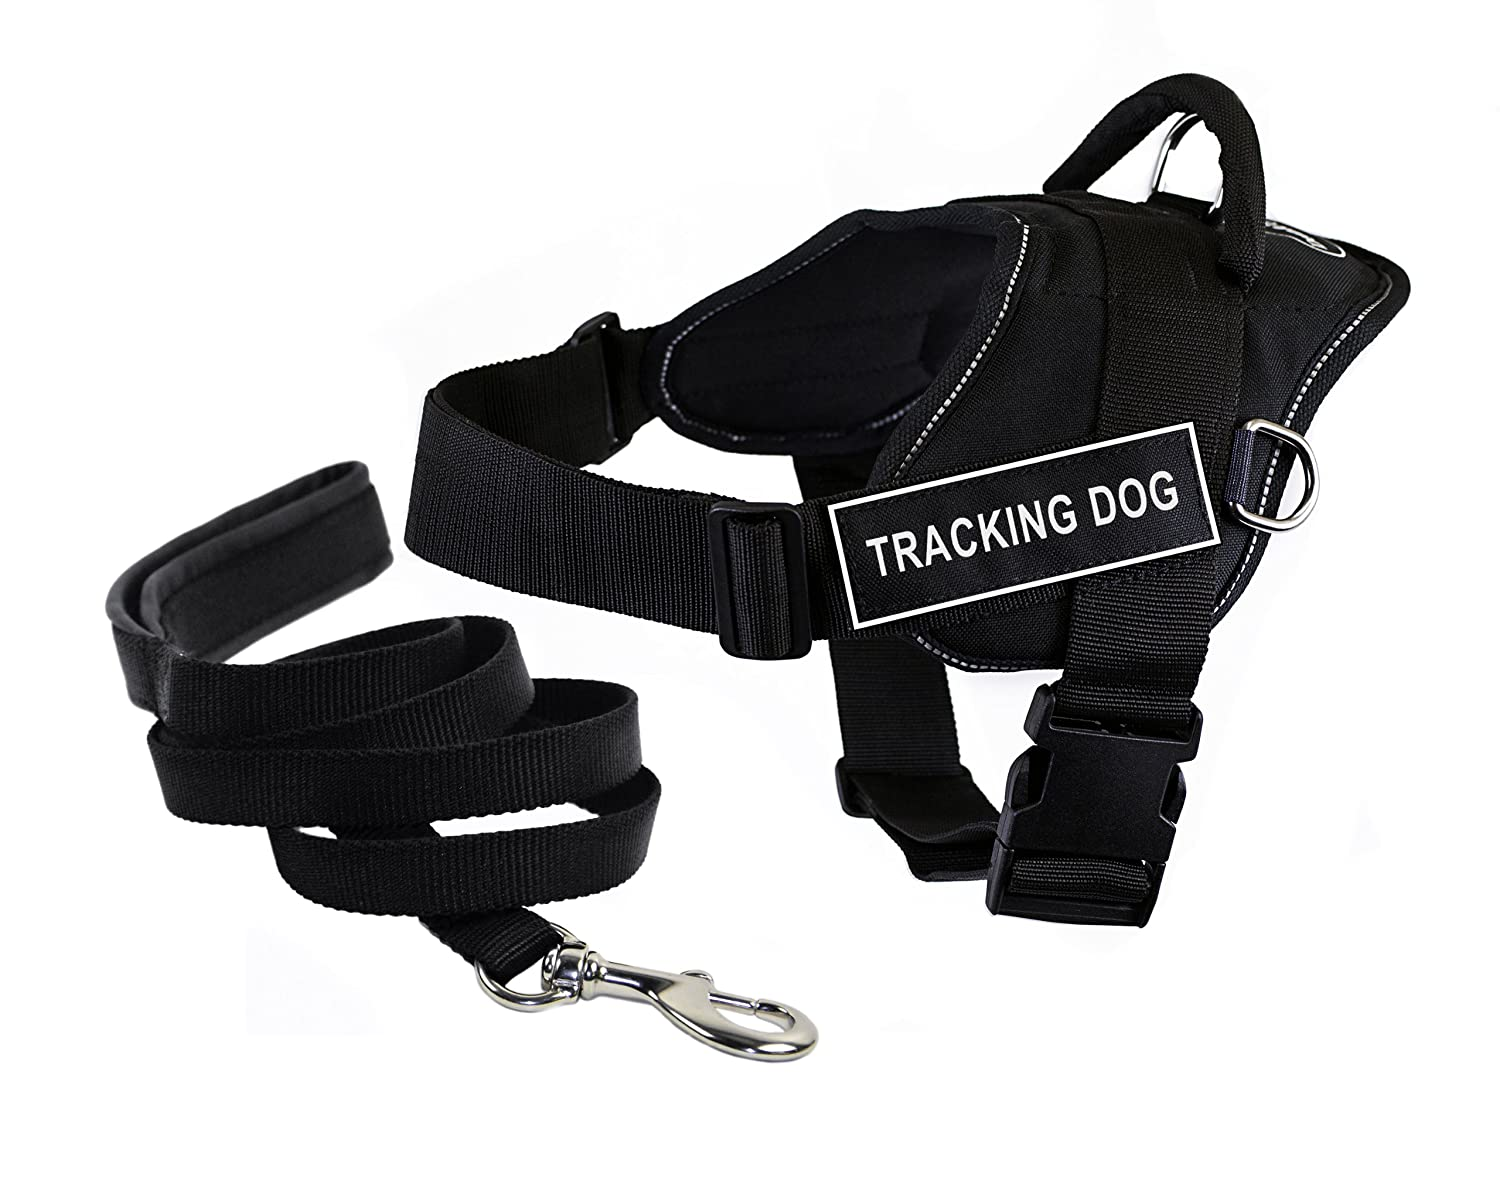 Dean & Tyler Bundle Large Black DT Fun Works Tracking Dog Reflective Harness with Padded Puppy  Leash and 6-Feet Stainless Steel Snap